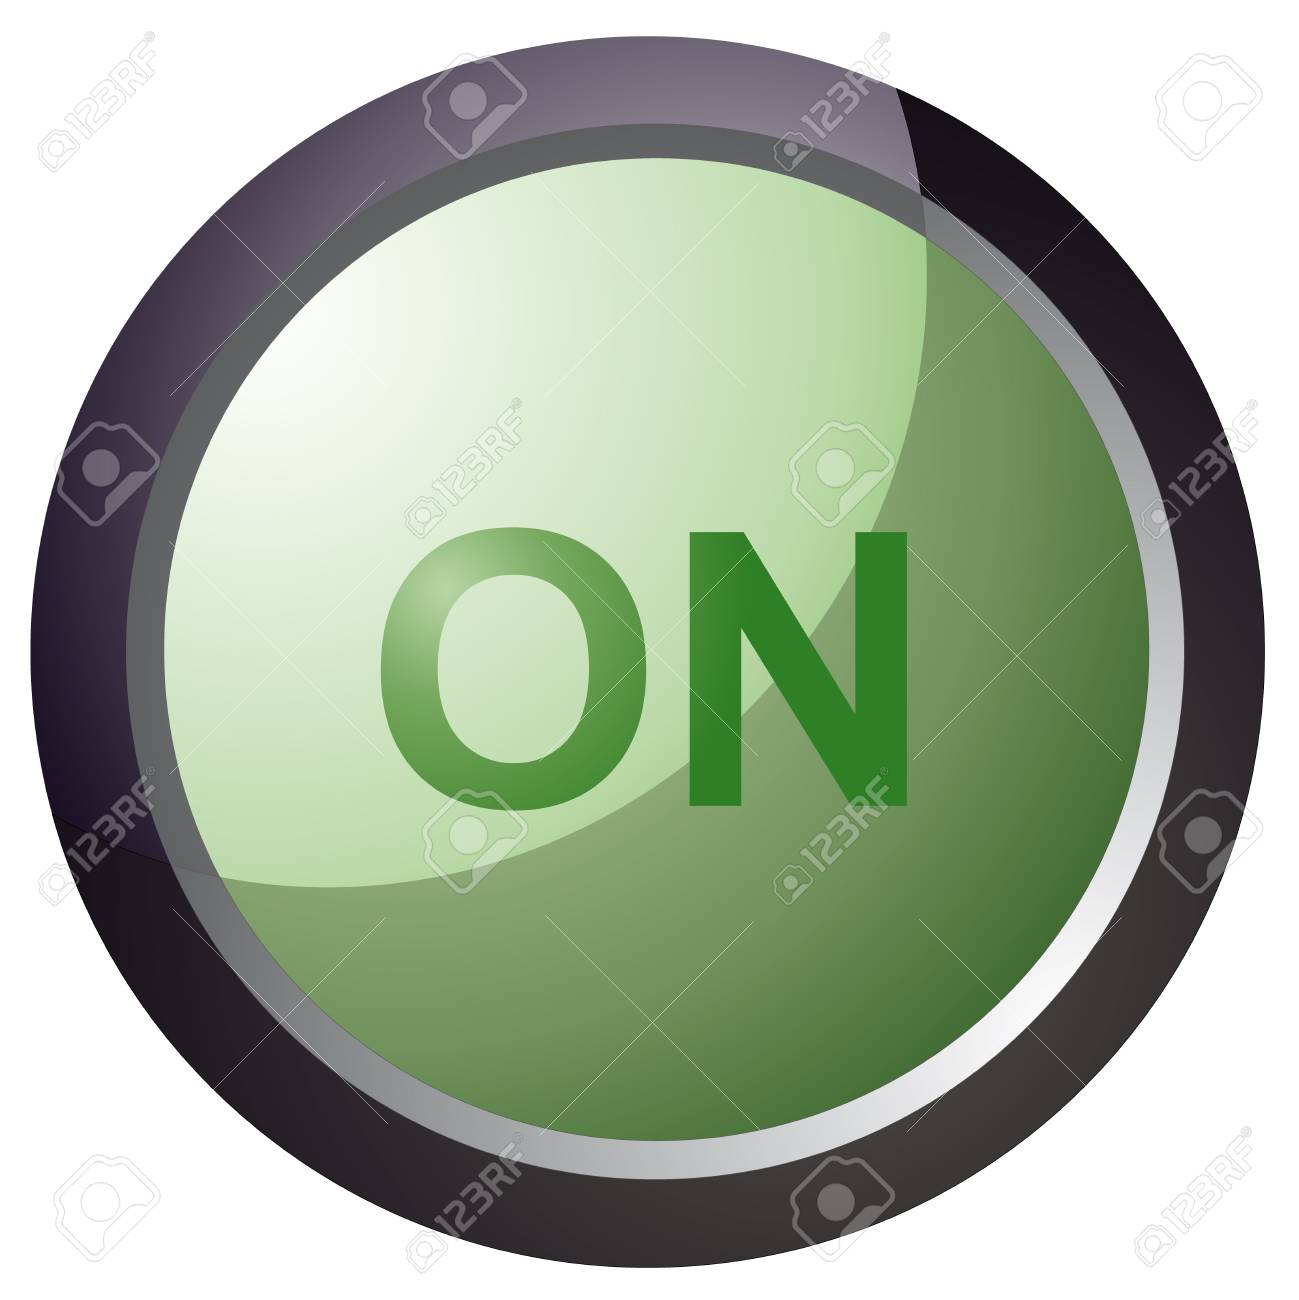 vector button on green color illustration Stock Vector - 18512614